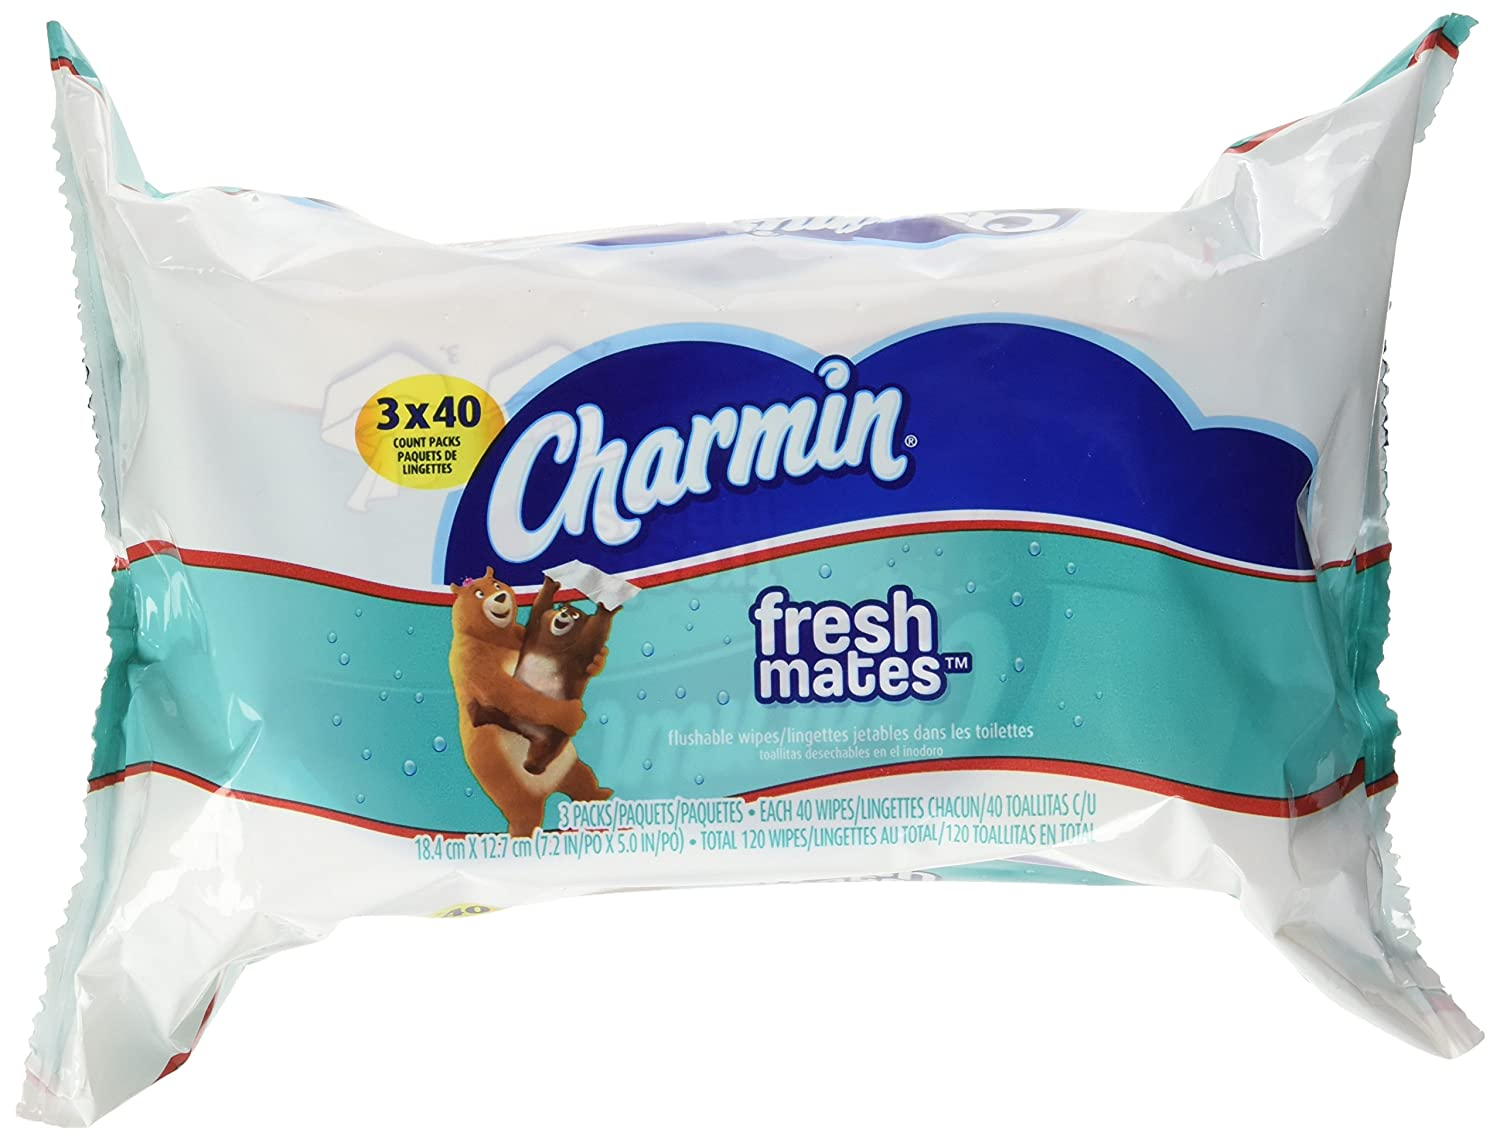 Amazon.com: Charmin Freshmates 120 Count Refill Pack (3 Sets of 40 Count Fresh Wipes) Pack of 8: Sports & Outdoors